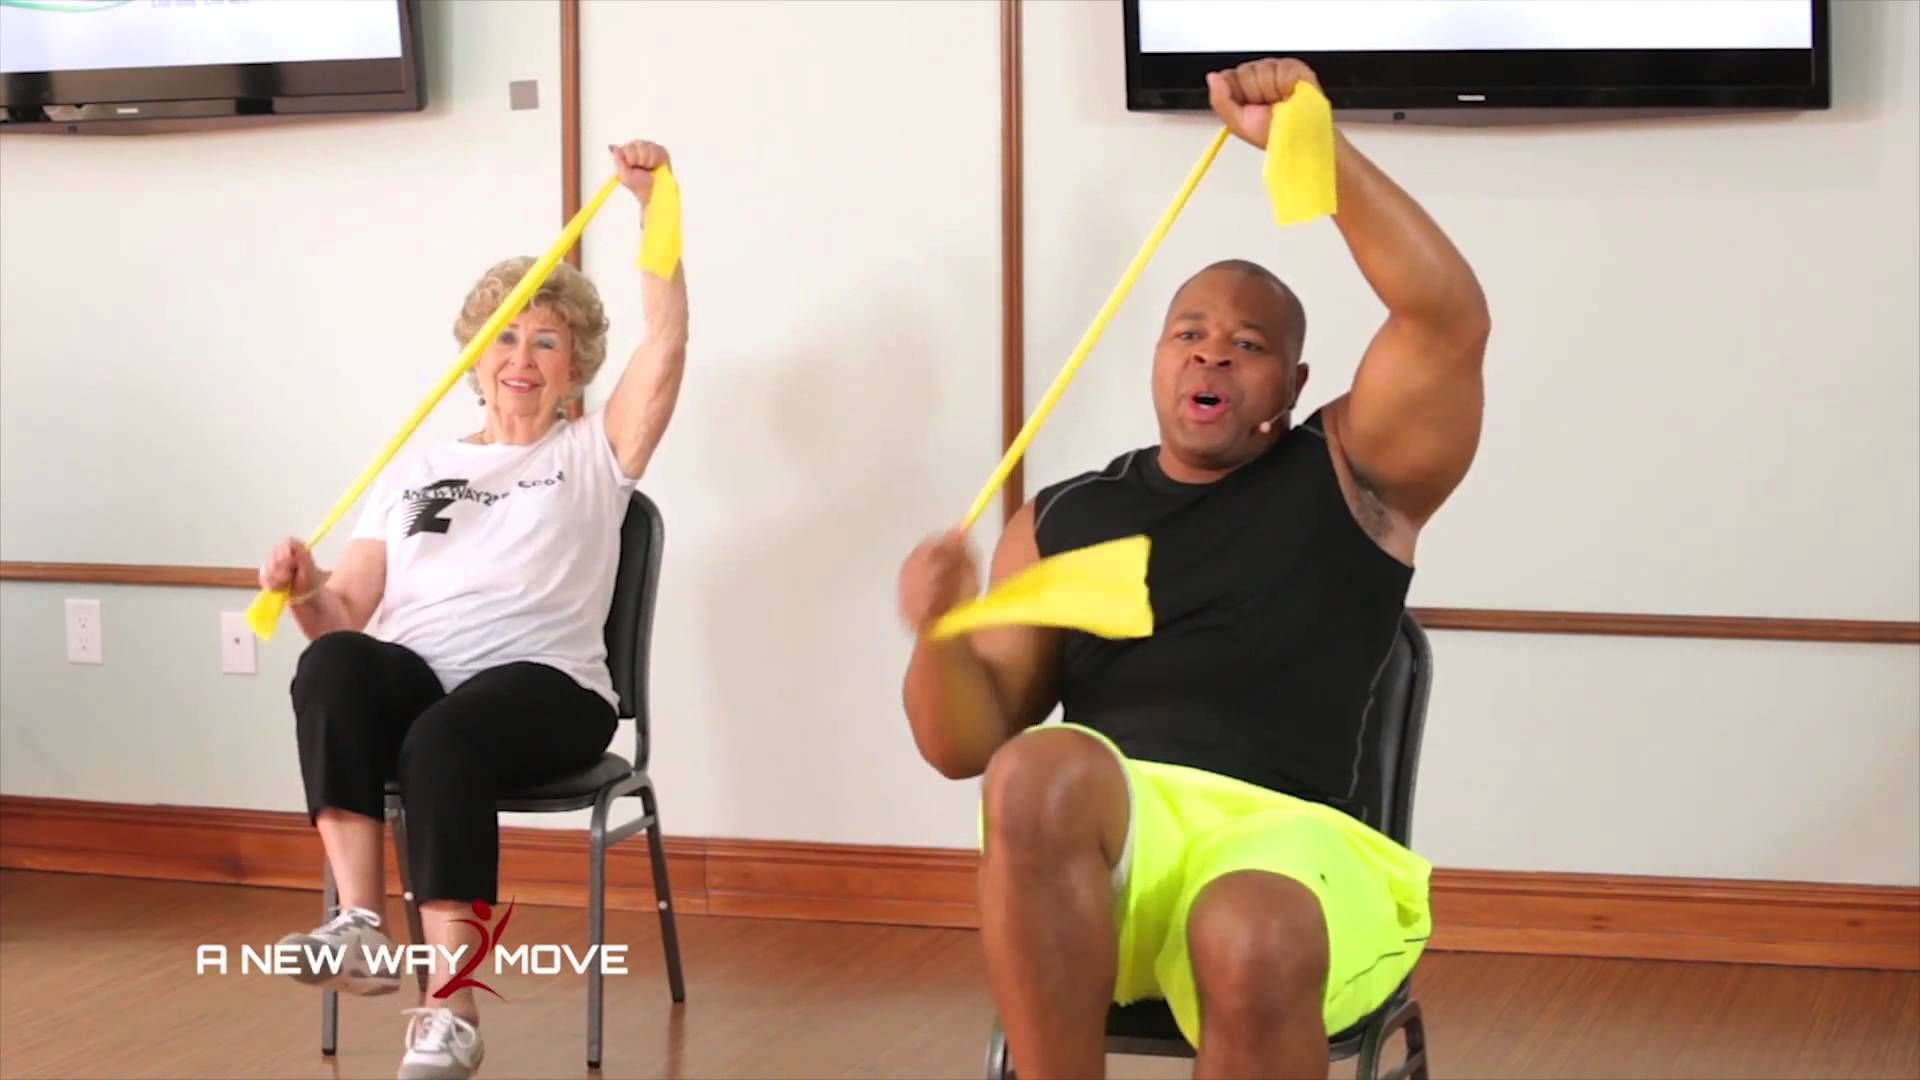 Core Workout Program Seated Exercises For Seniors By Curtis Adams With Images Senior Fitness Workout Programs Exercise